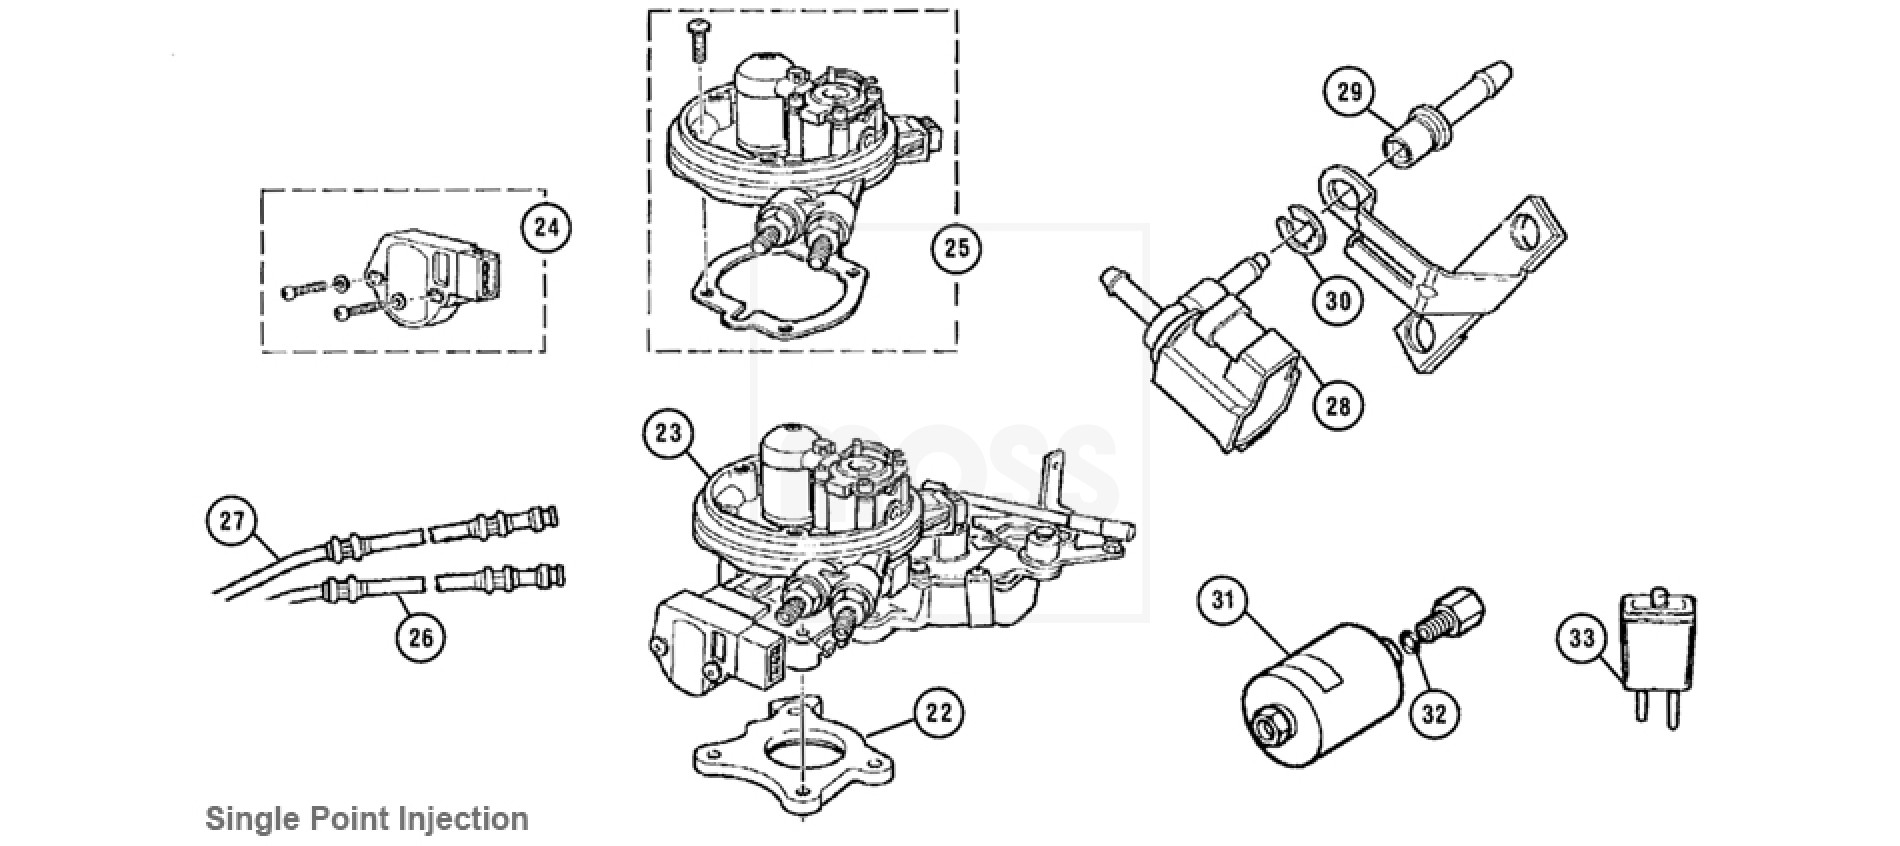 fuel injection  single point injection